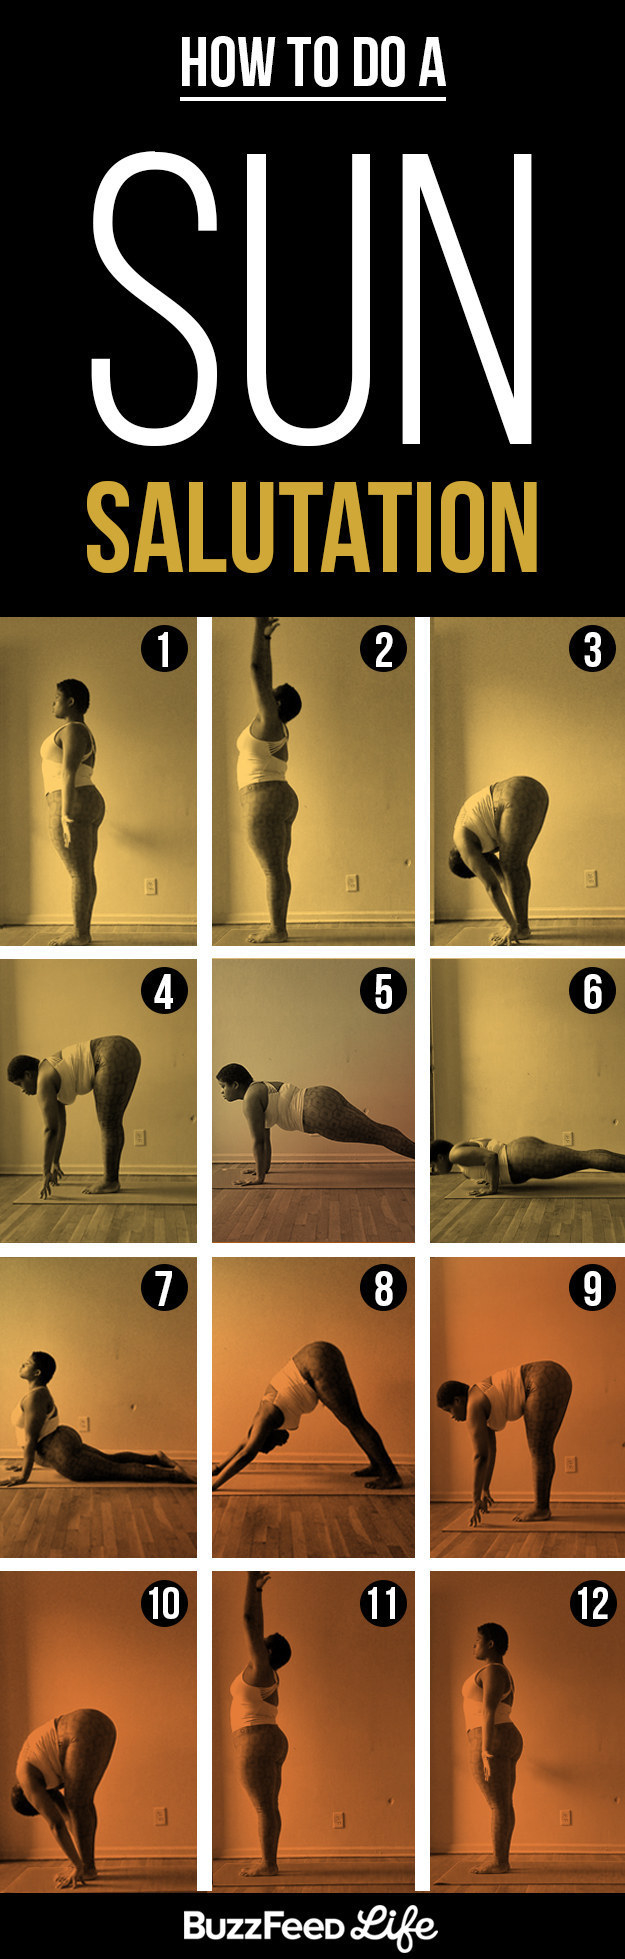 Wake up and do some light yoga to get you in the ~chill vacation~ mindset.